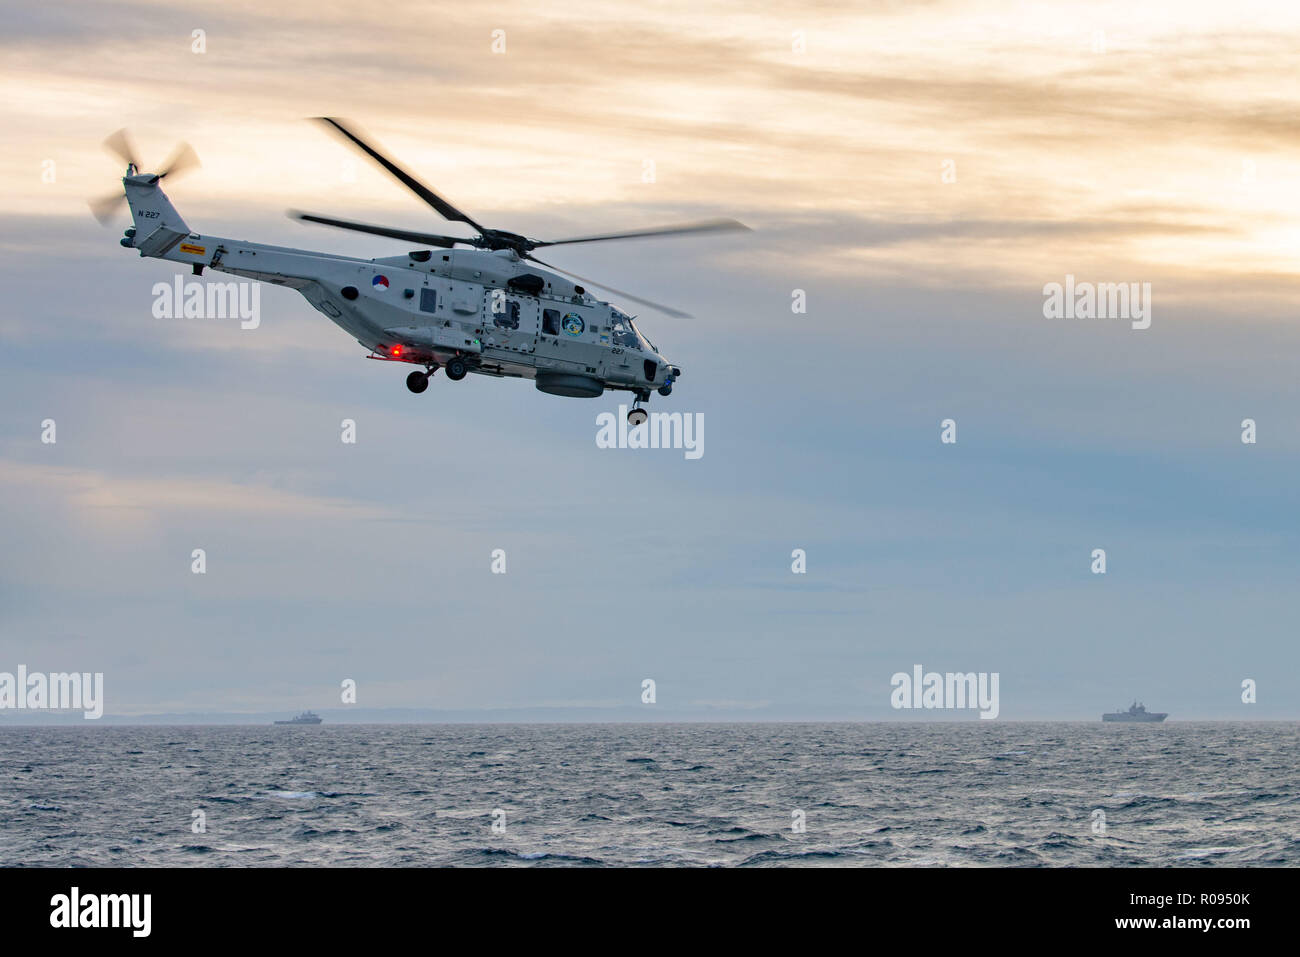 NORWAY, Oct. 31 2018. GEN. SNMG2 VESSELS ESCORT AMPHIBIOUS TASK GROUP.  A Royal Netherlands Navy NH-90 takes off from HNLMS De Ruyter duirng NATO exercise Trident Juncture on October 31, 2018.    Trident Juncture 18 is designed to ensure that NATO forces are trained, able to operate together and ready to respond to any threat from any direction. Trident Juncture 18 takes place in Norway and the surrounding areas of the North Atlantic and the Baltic Sea, including Iceland and the airspace of Finland and Sweden.     With around 50,000 participants from 31 nations Trident Juncture 2018 is one of  Stock Photo